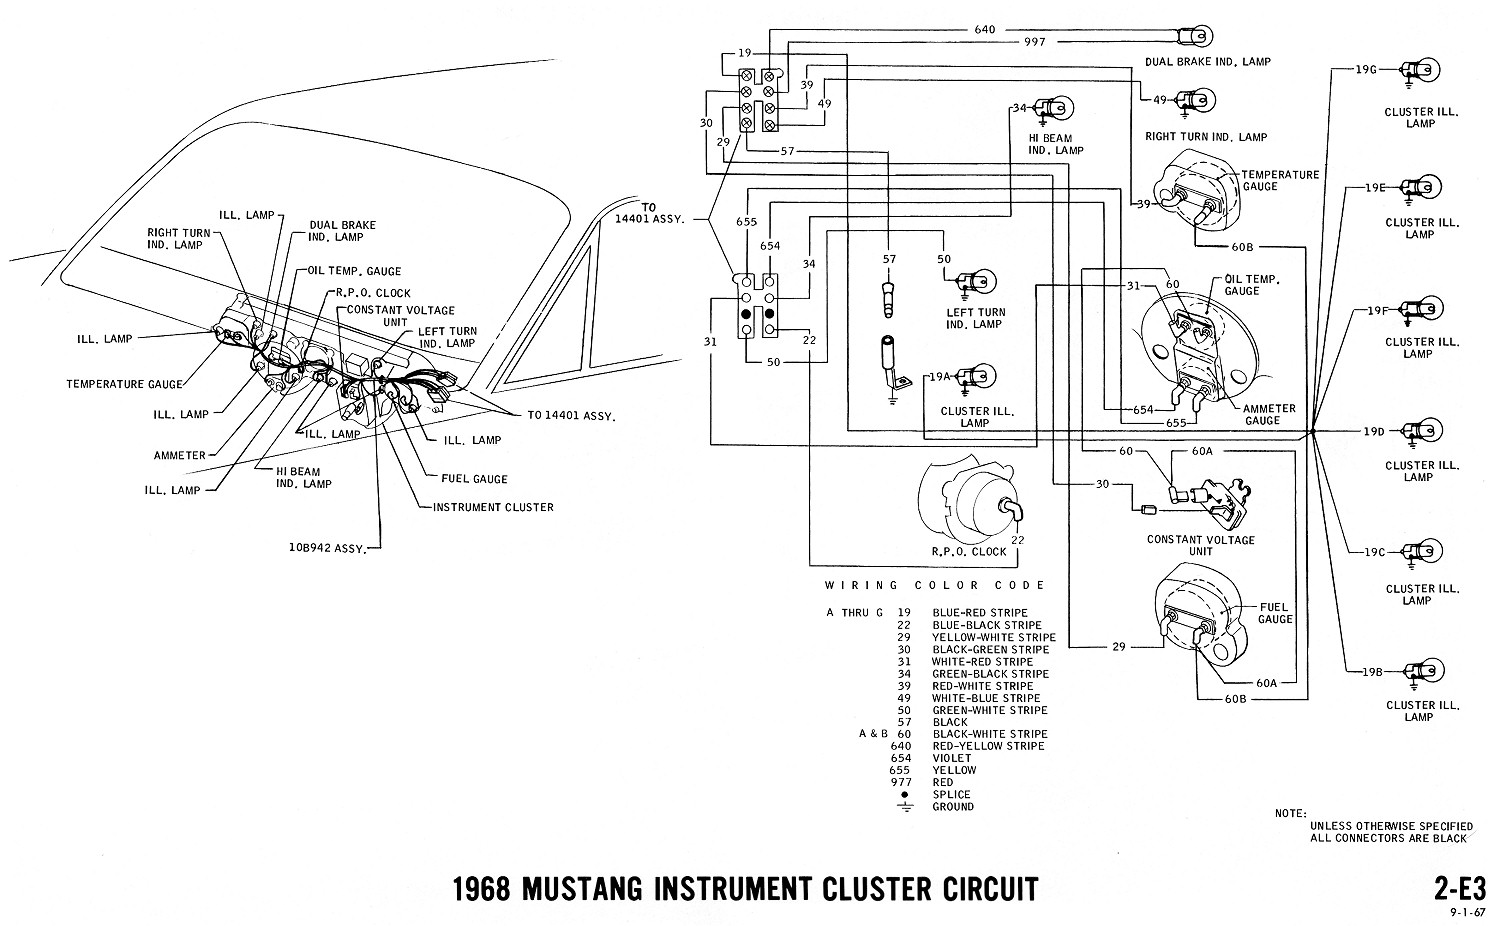 1968 mustang wiring diagrams and vacuum schematics average joe rh averagejoerestoration com 1968 mustang wiring diagram free 1966 mustang wiring diagram pdf